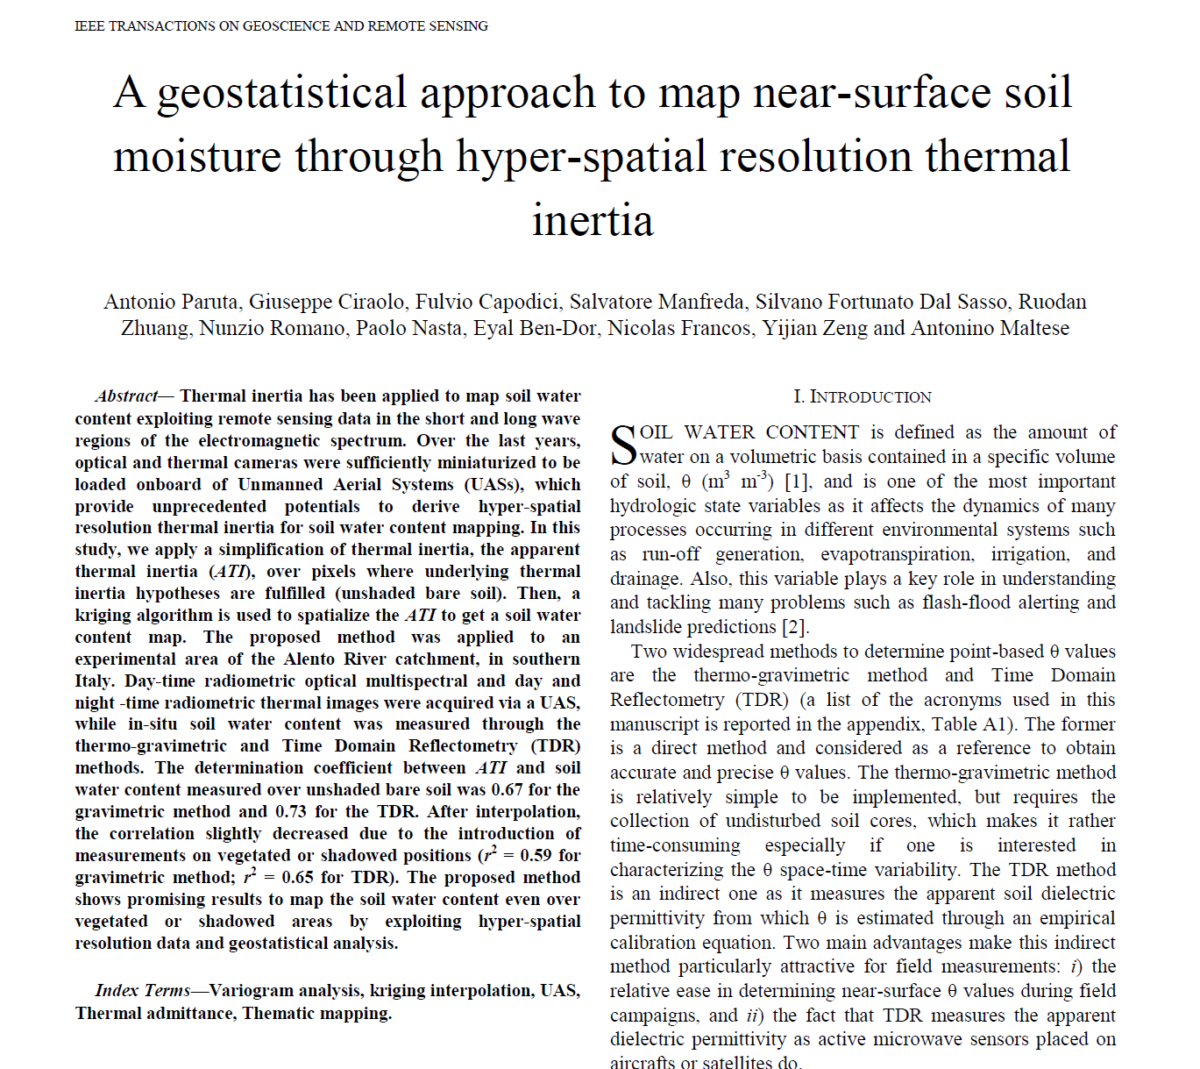 A Geostatistical Approach to Map Near-Surface Soil Moisture Through Hyperspatial Resolution Thermal Inertia